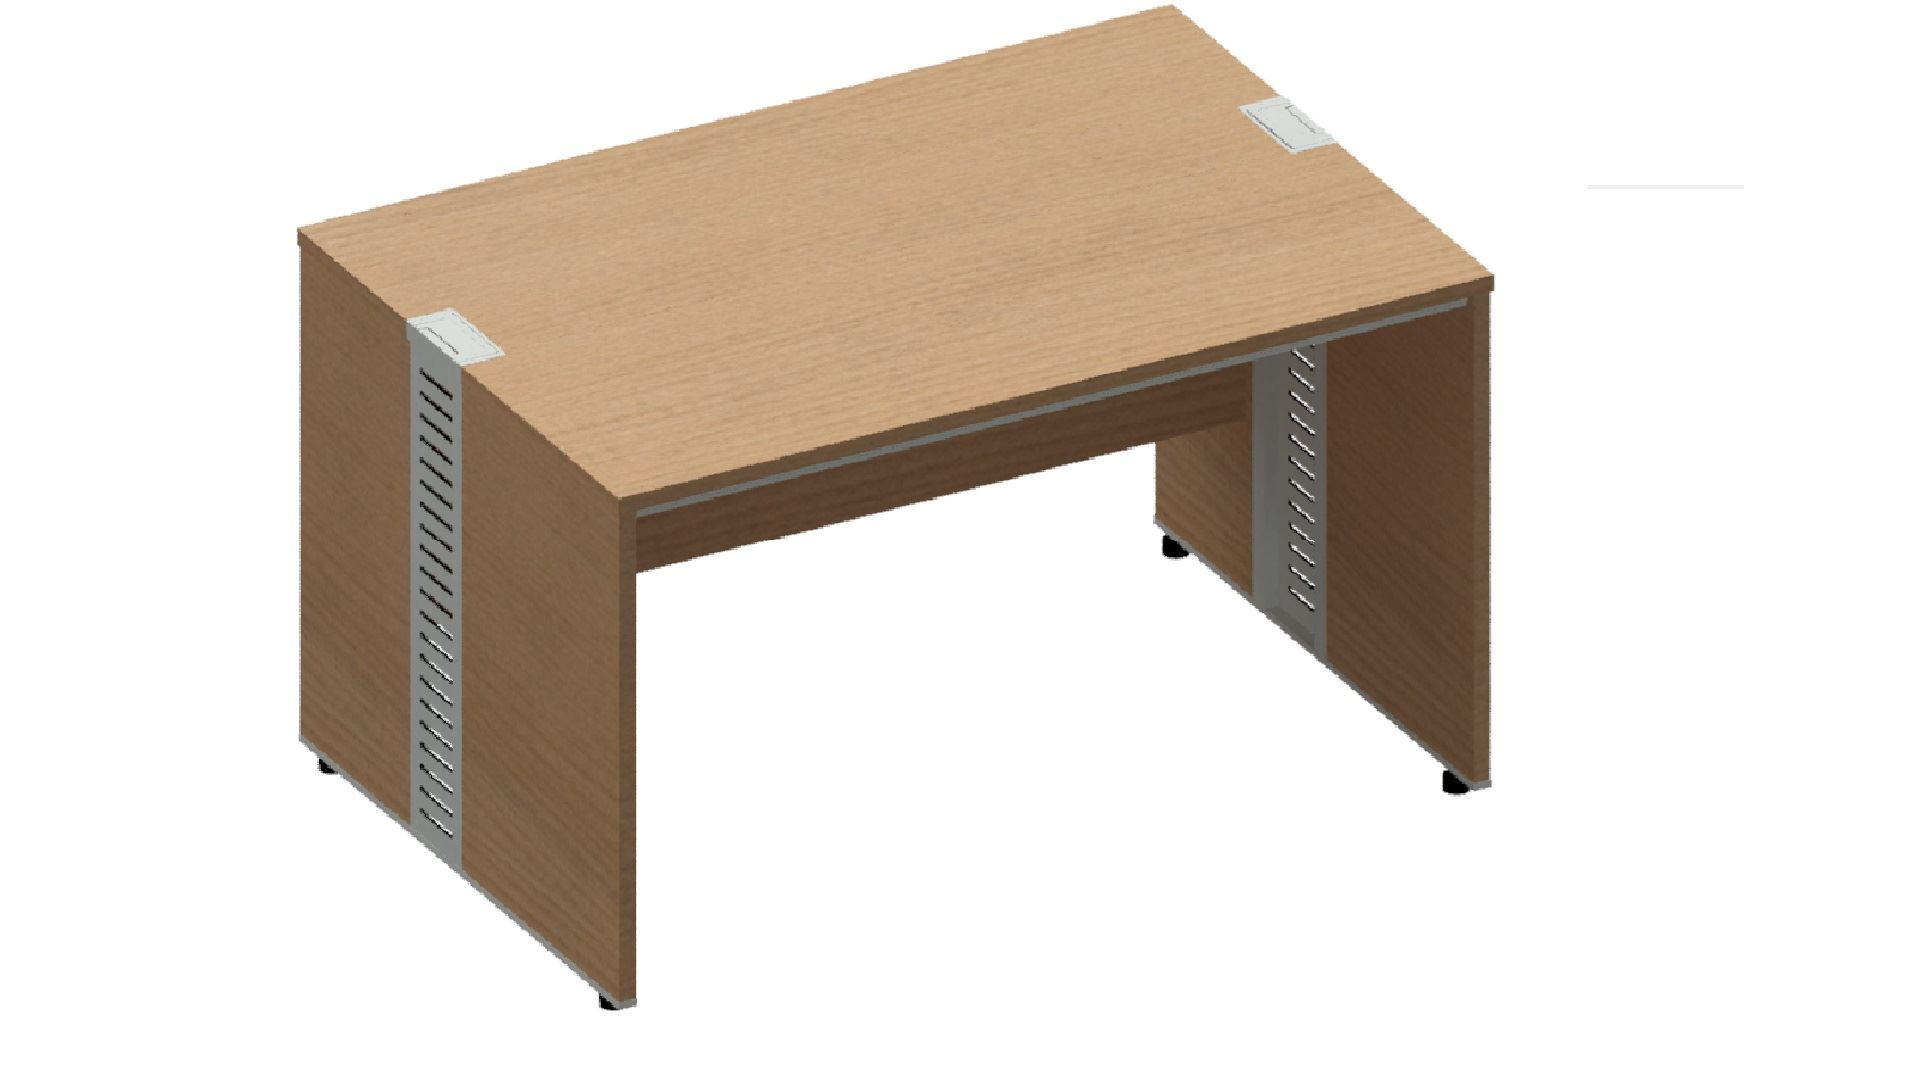 Supertech Standard Desk 1600x800x745